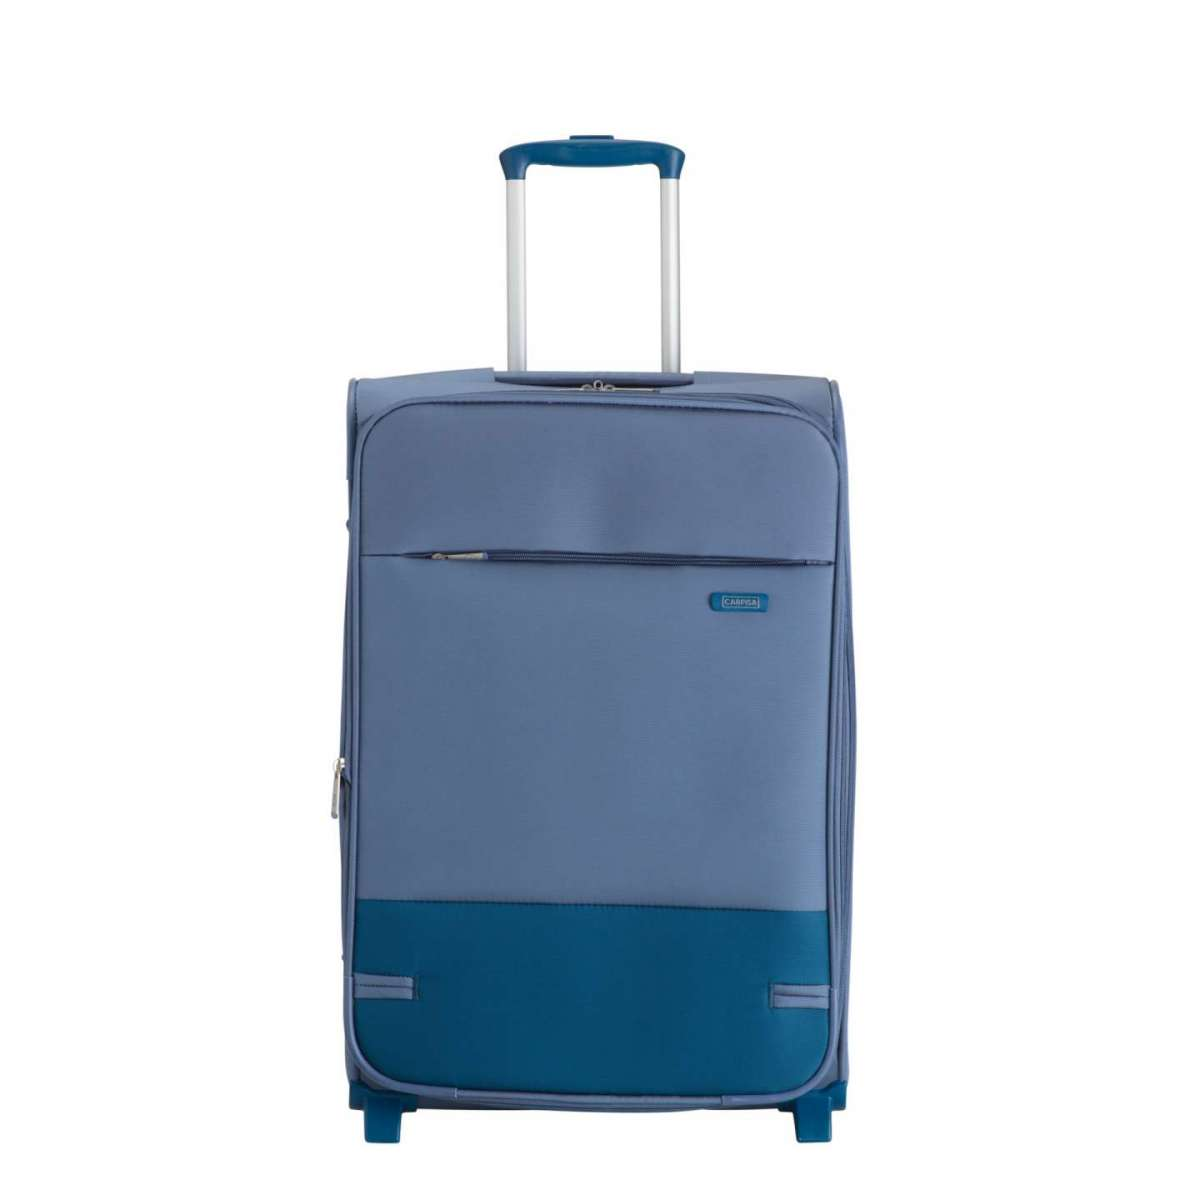 Trolley medio a due ruote Carpisa a 69,95 euro